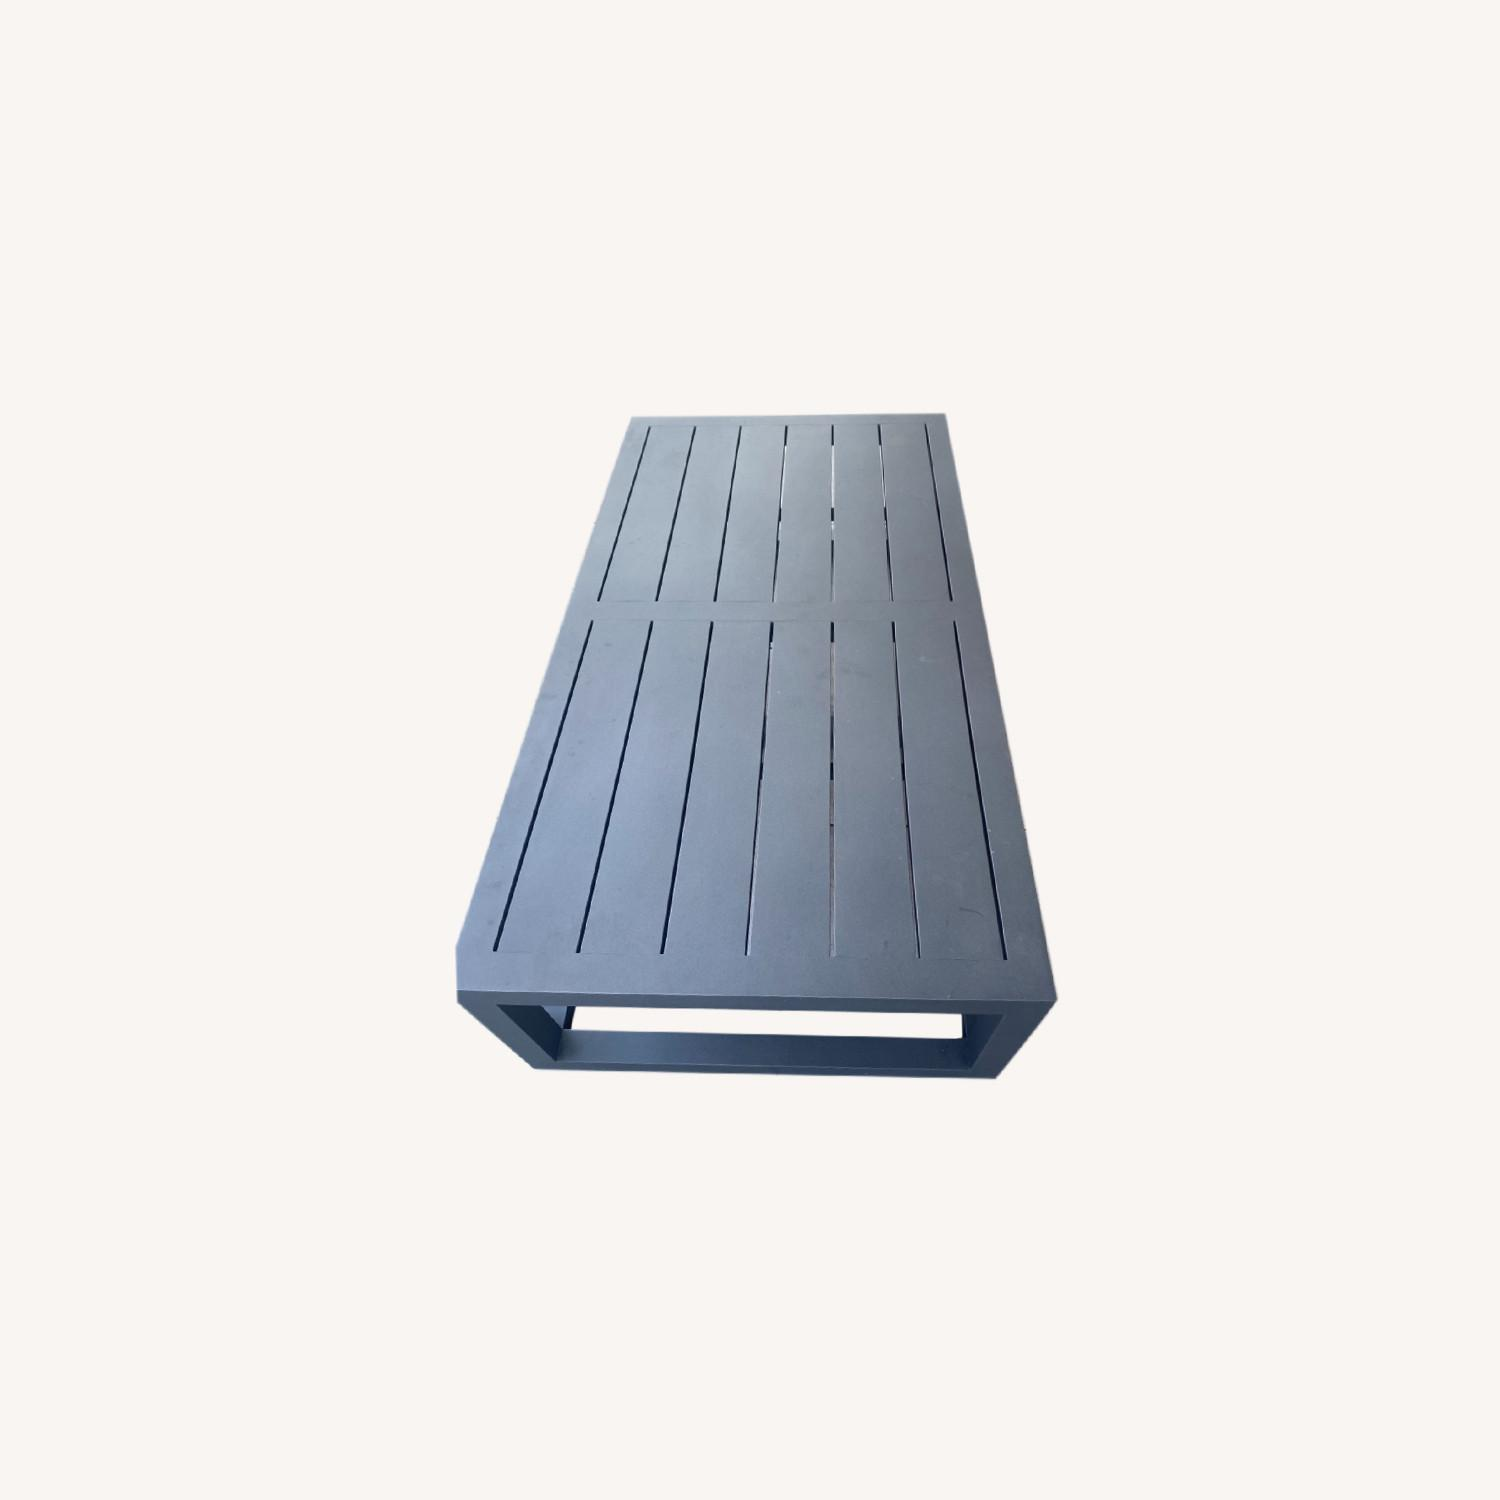 Restoration Hardware Outdoor Coffee Table - image-0